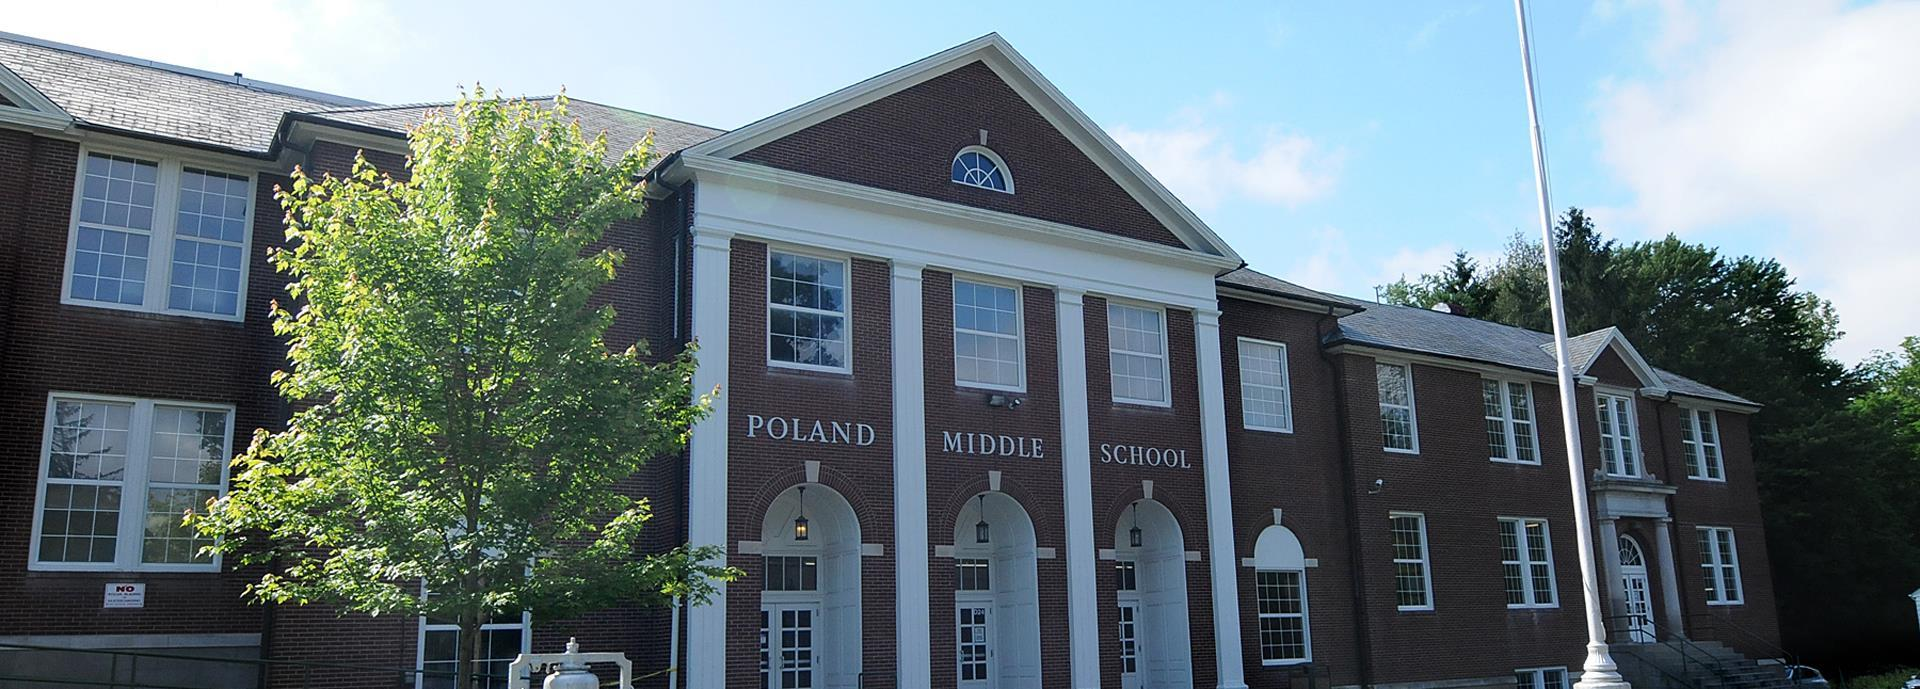 Poland Middle School